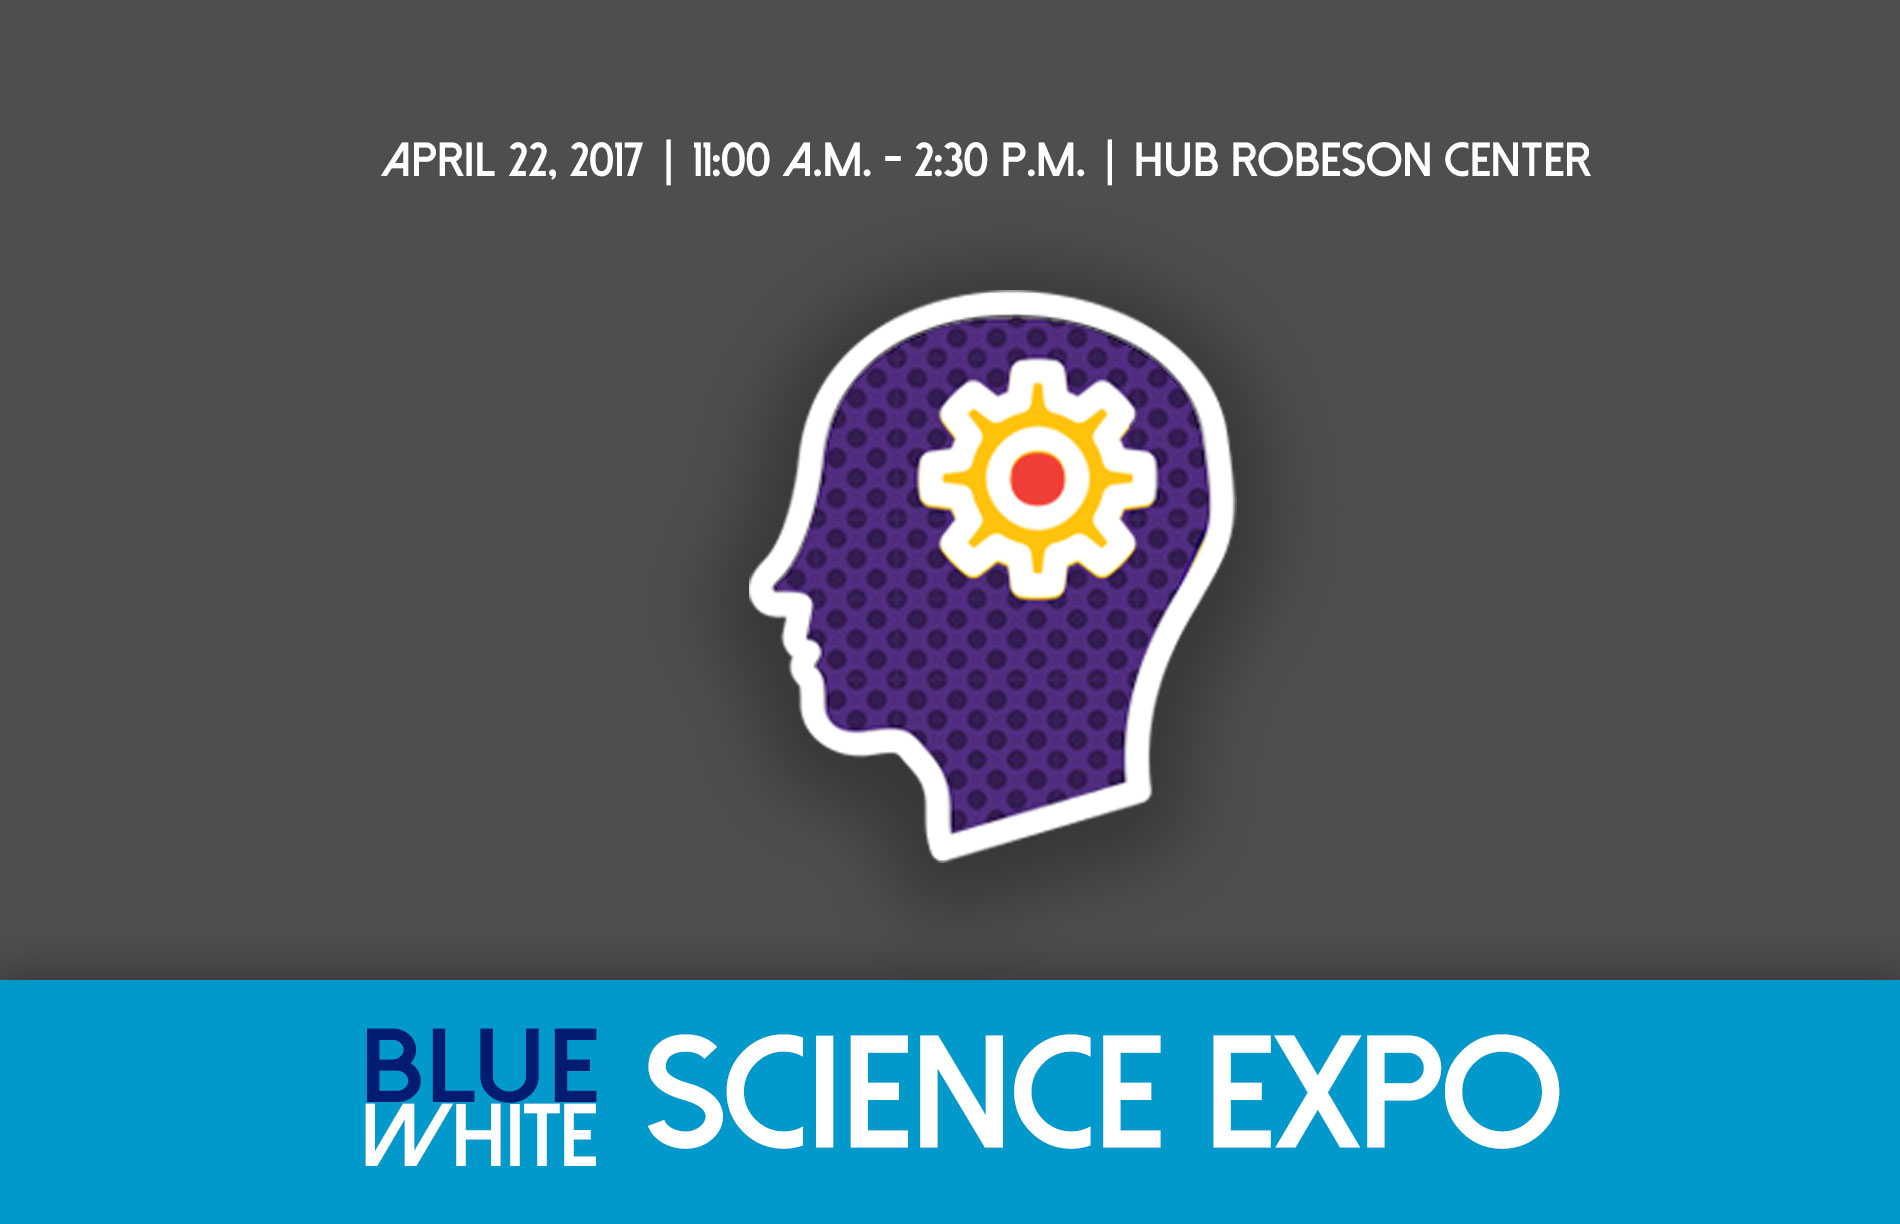 April 22, 2017, 11 a.m. - 2:30 p.m., Hub Robeson Center, Blue-White Science Expo